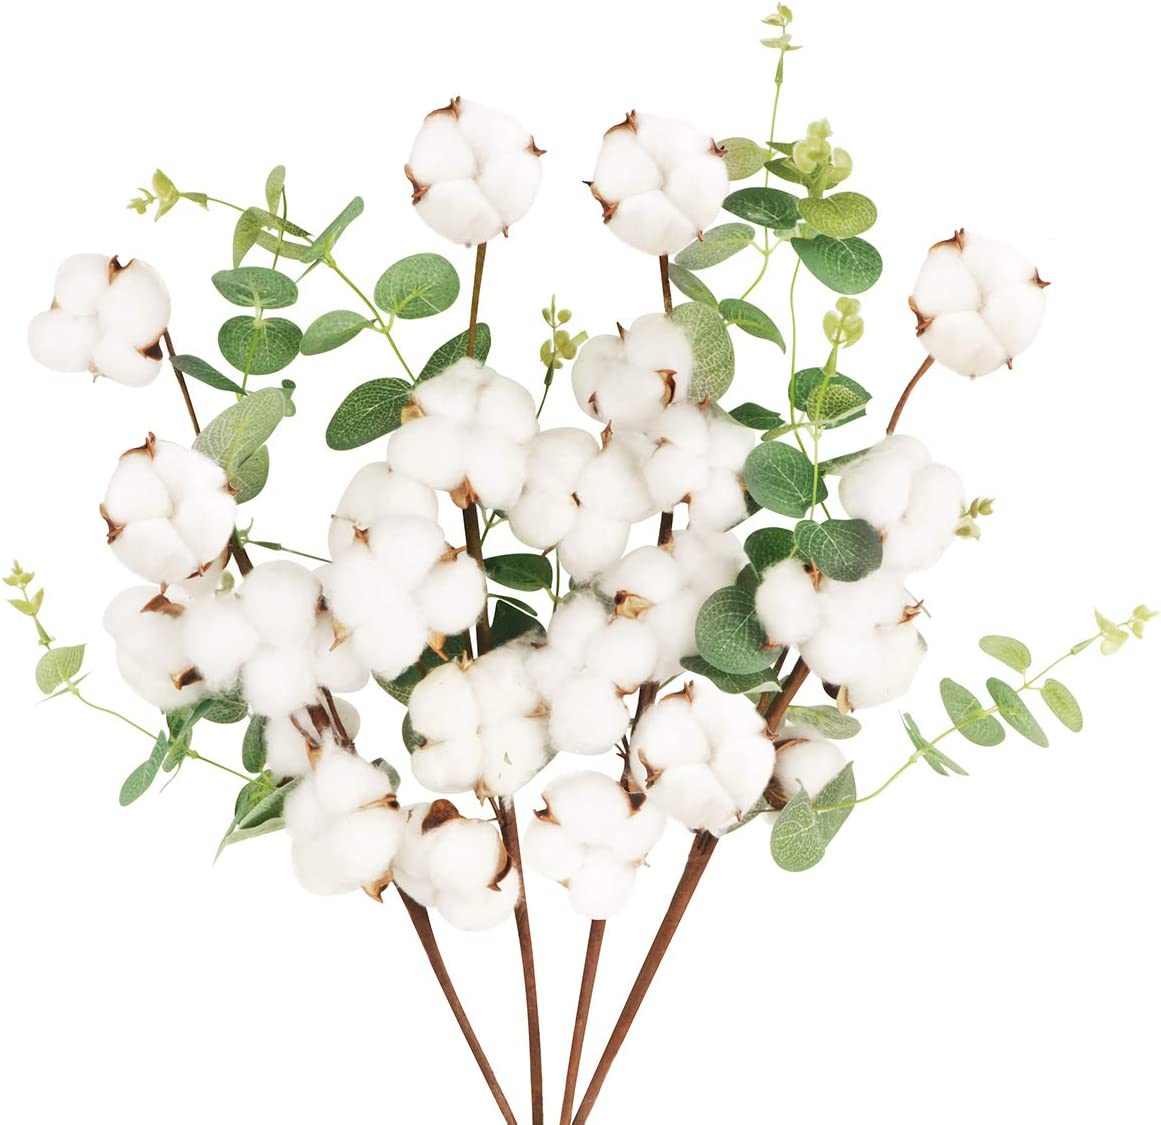 """4 Packs Cotton Stems Decor,Faux Dried Cotton Branches with Eucalyptus Leaves,Tall Artificial Cotton Flowers Decoration for Farmhouse Vase Fillers Table Centerpieces Rustic Country Decor,25.6"""""""